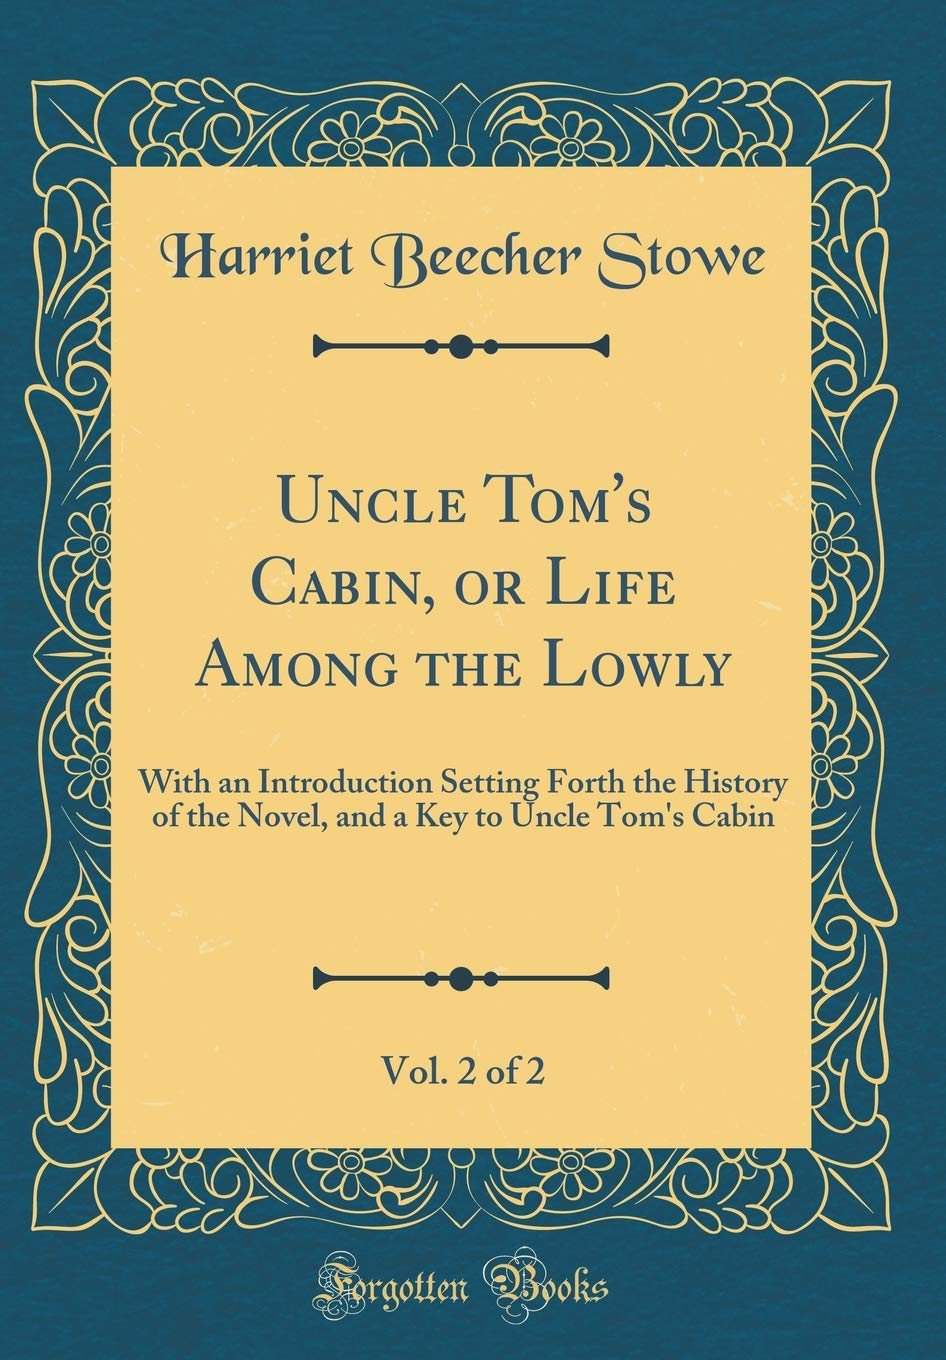 Uncle Tom's Cabin, or Life Among the Lowly, Vol. 2 of 2: With an Introduction Setting Forth the History of the Novel, and a Key to Uncle Tom's Cabin (Classic Reprint) ebook